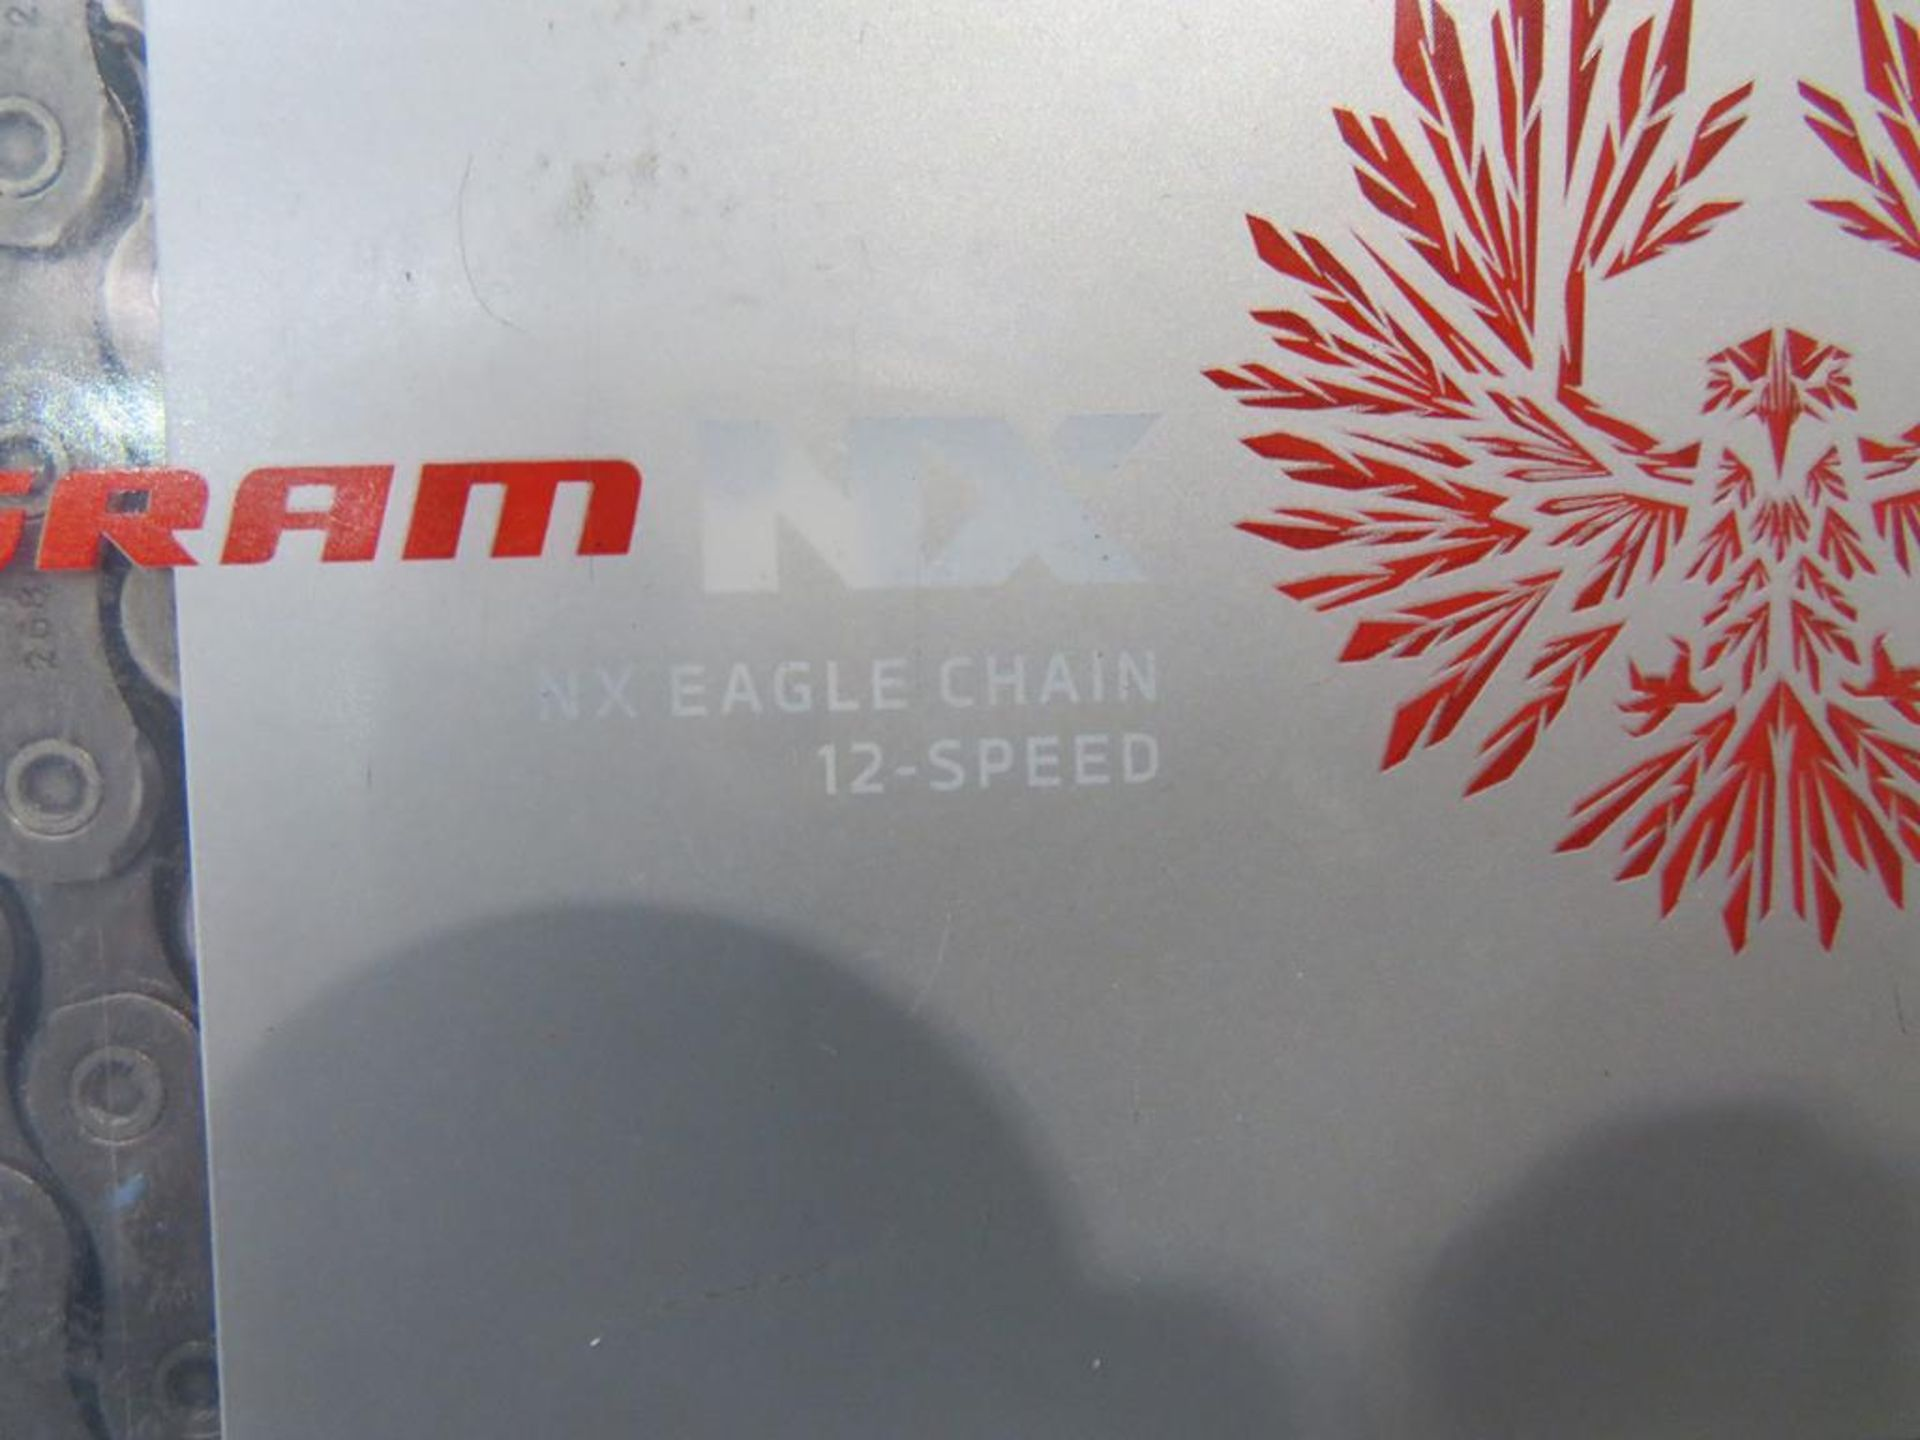 Lot 44 - Selection of Sram Bicycle Chains